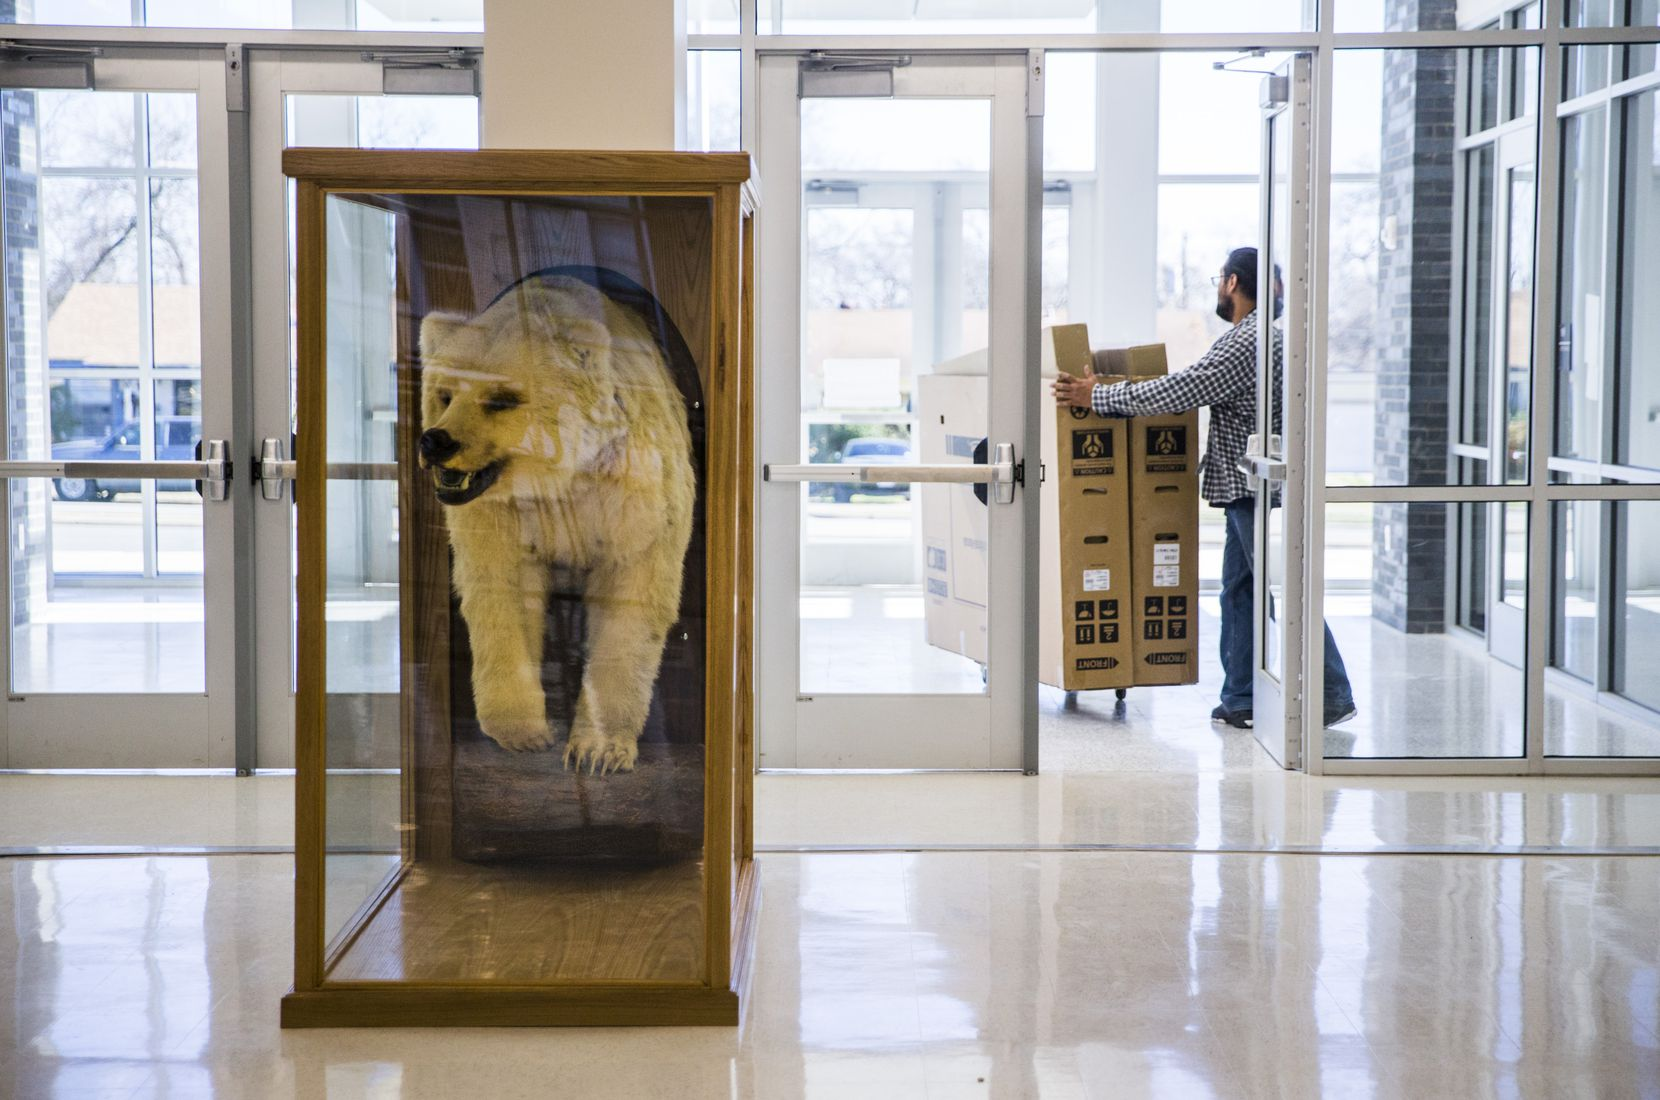 A taxidermy bear is displayed in the new front entrance of South Oak Cliff High School on Thursday, December 19, 2019 in Dallas. Workers are finishing a two-year, $52 million renovation to the campus. (Ashley Landis/The Dallas Morning News)